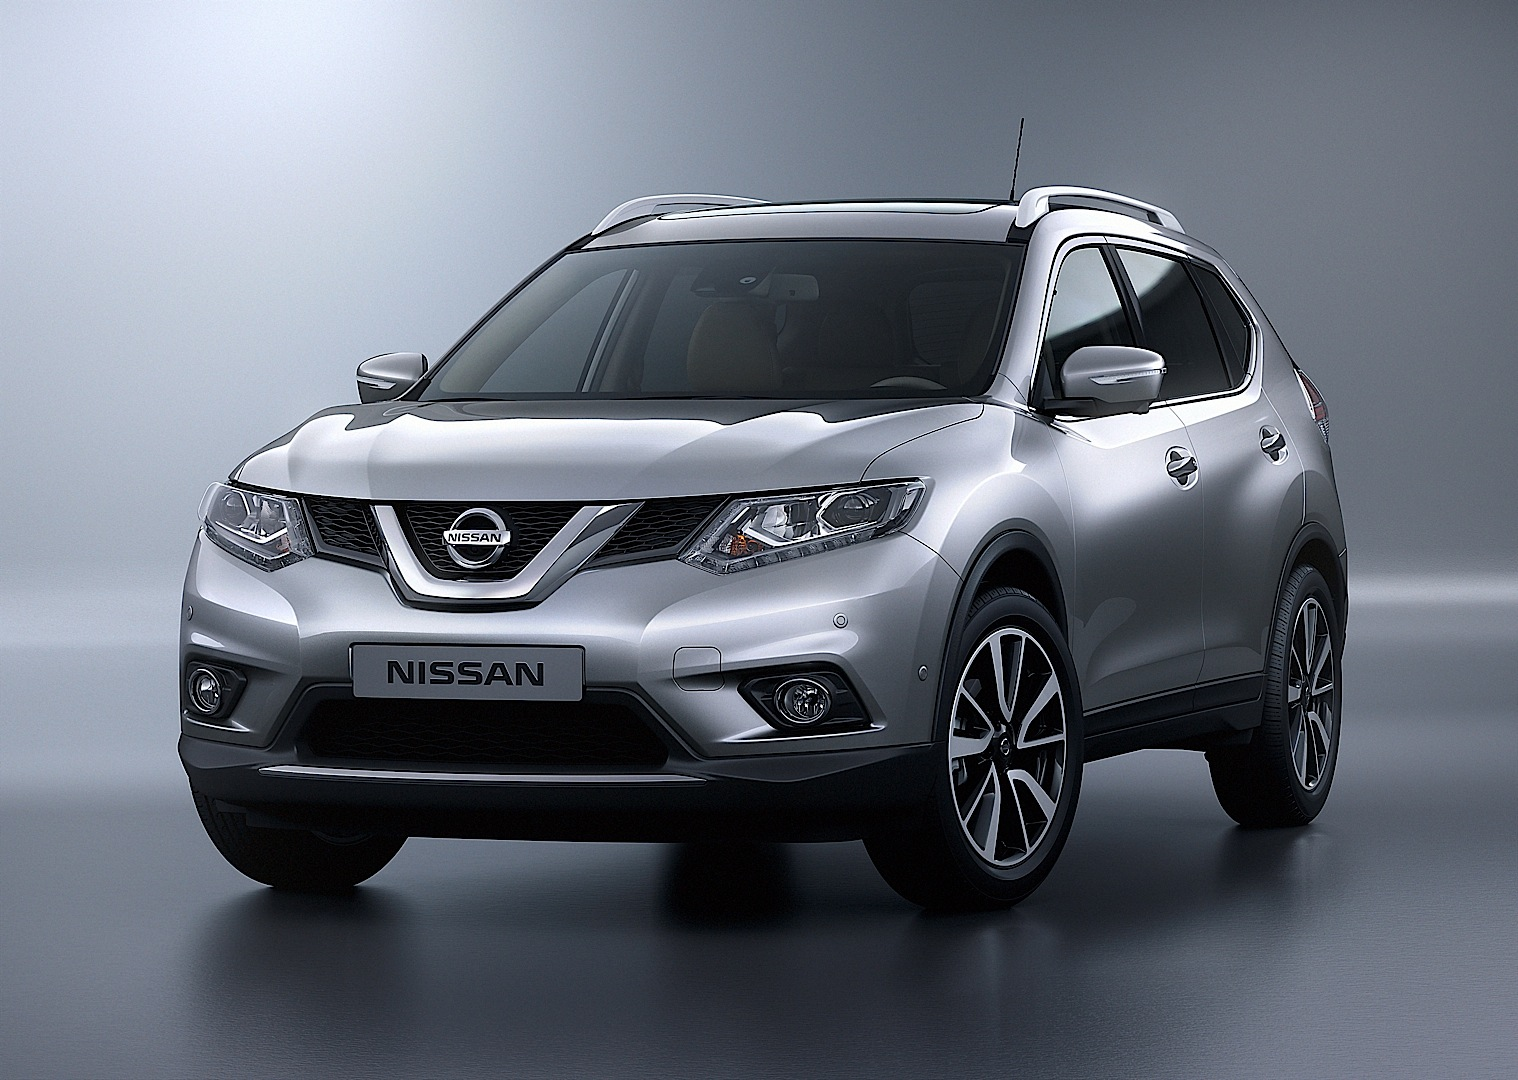 Nissan X-Trail UK Pricing, Specs Released - autoevolution